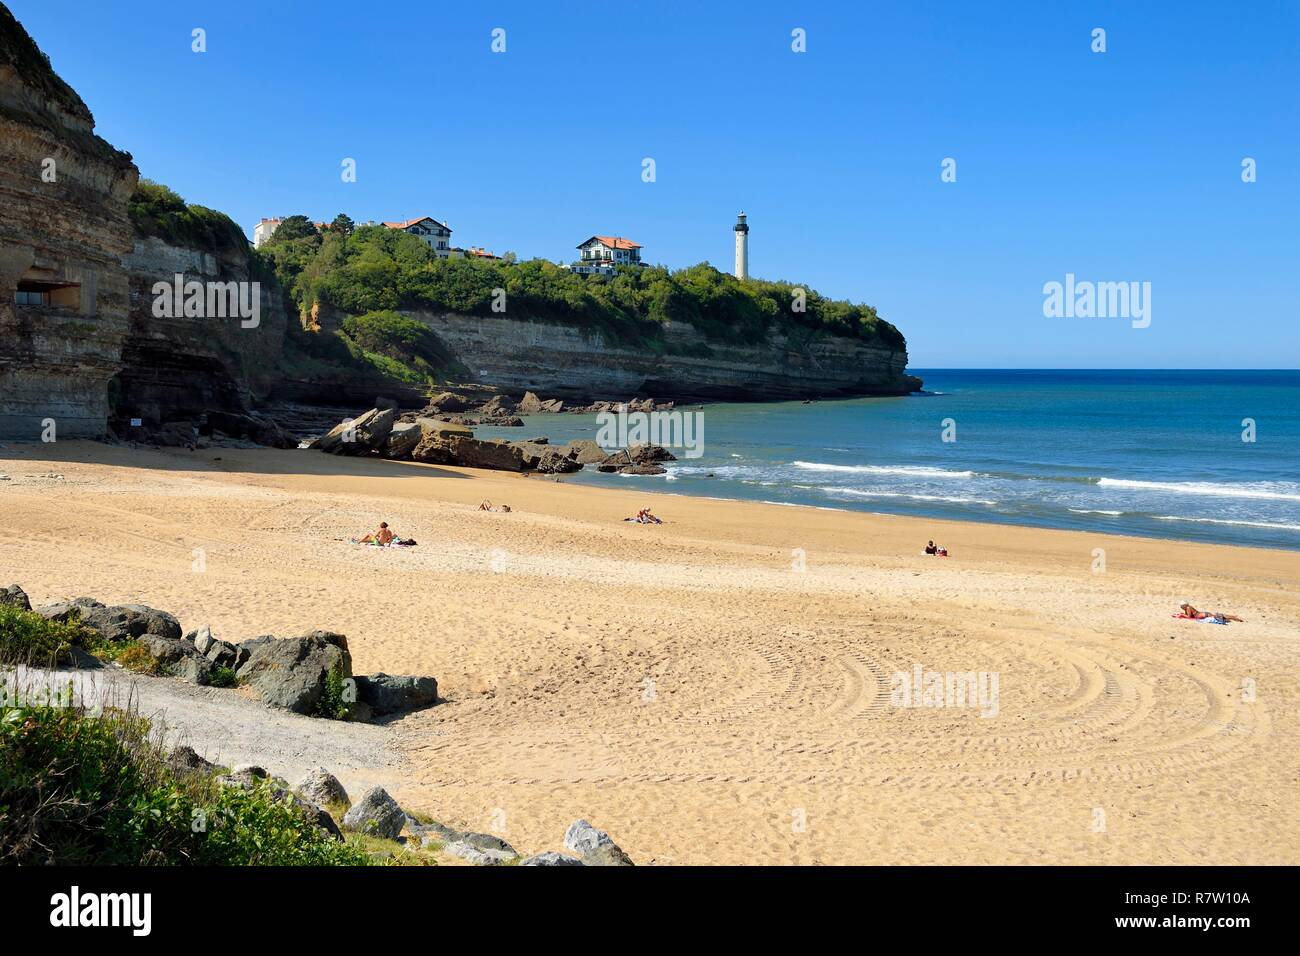 Chambre D Amour Chambre Damour Beach Stock Photos Chambre Damour Beach Stock